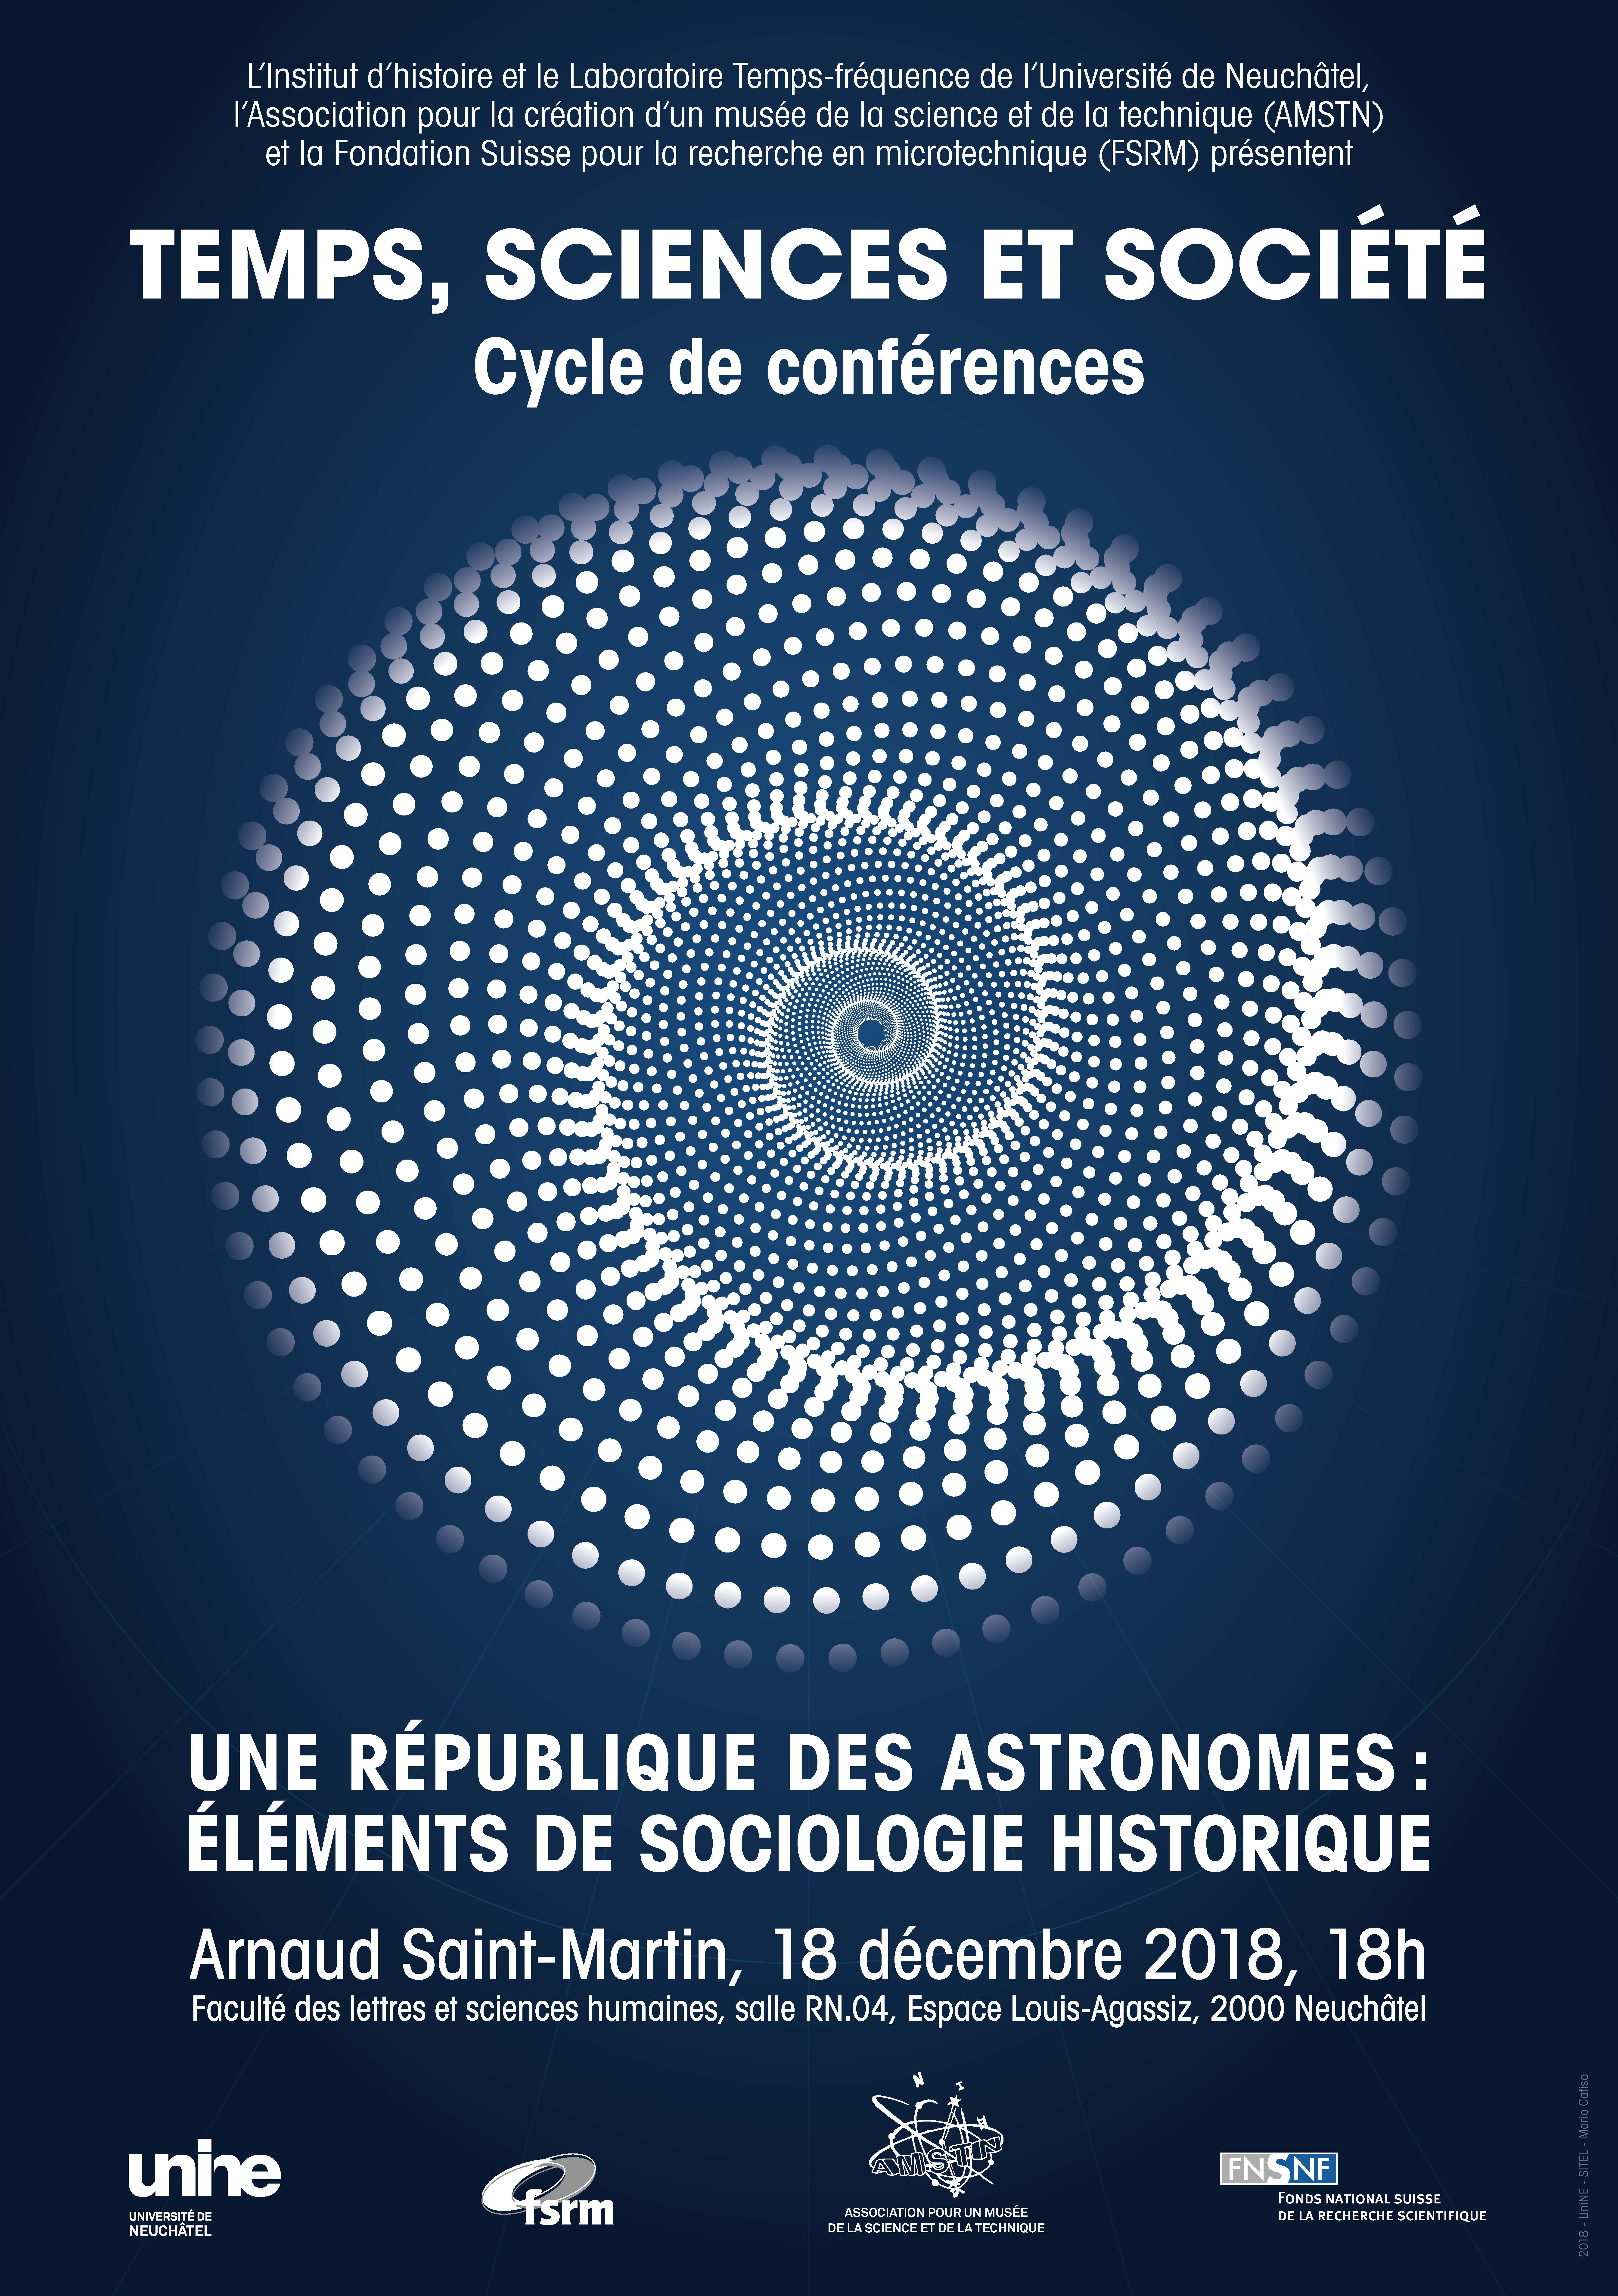 20181102_Courriel-flyer-cycle-conference-temps-cielStMartin_Page_1.jpg